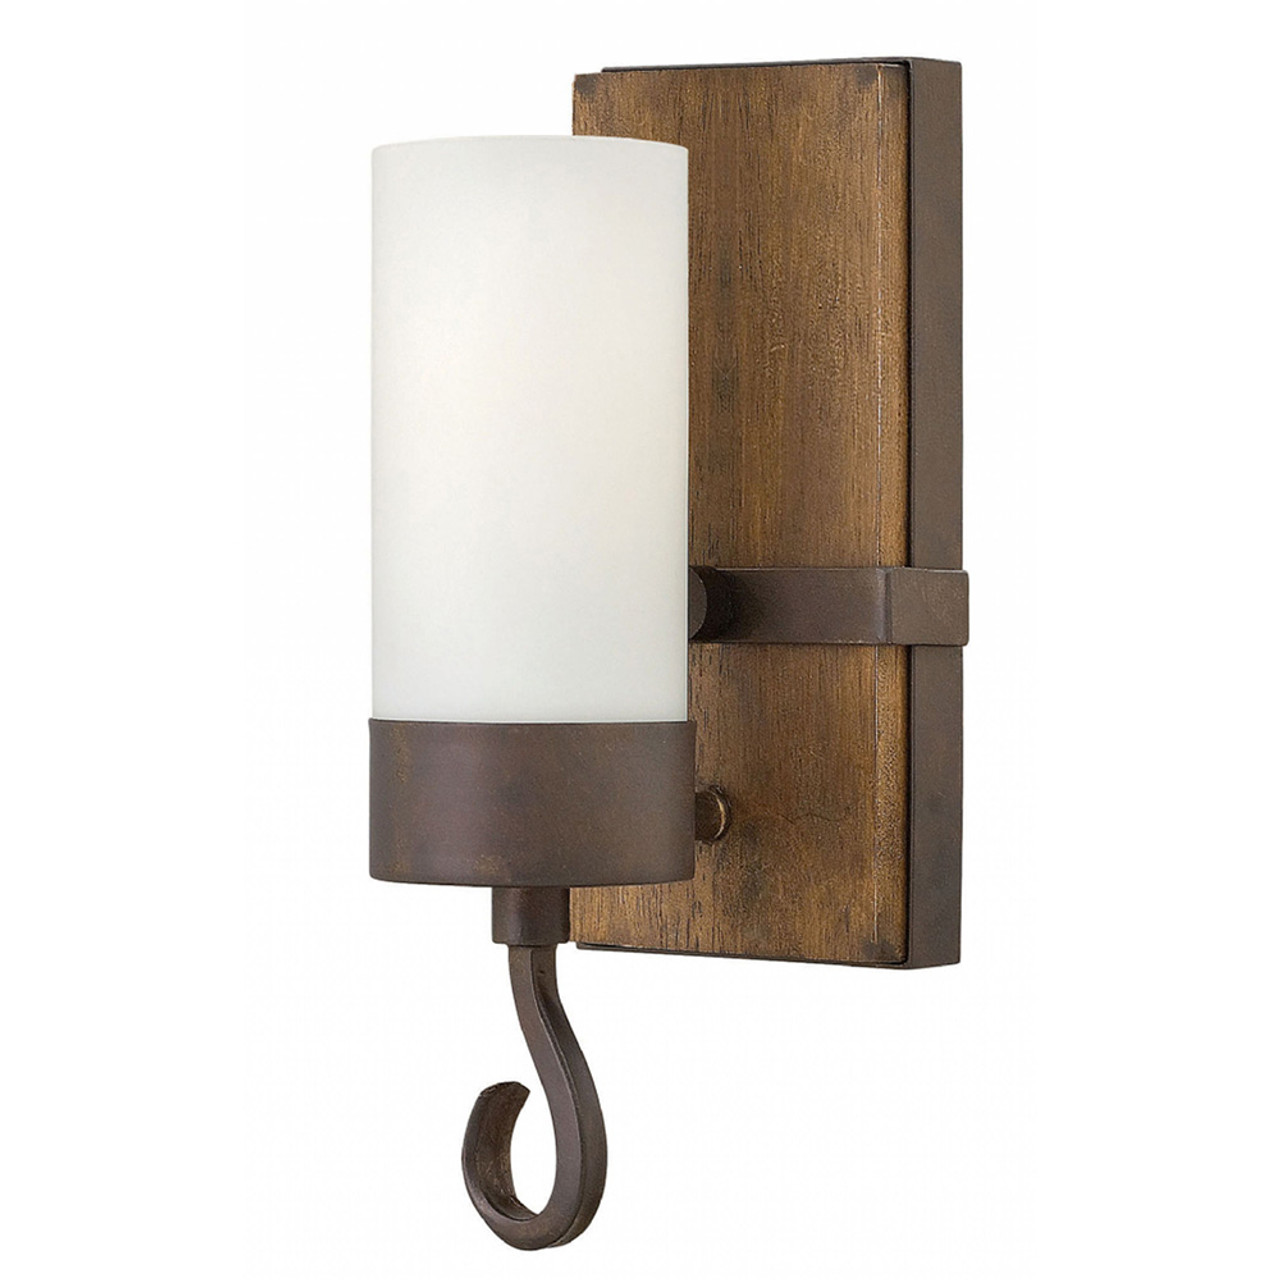 sale retailer e4186 cc437 Hinkley Lighting Cabot Wall Sconce